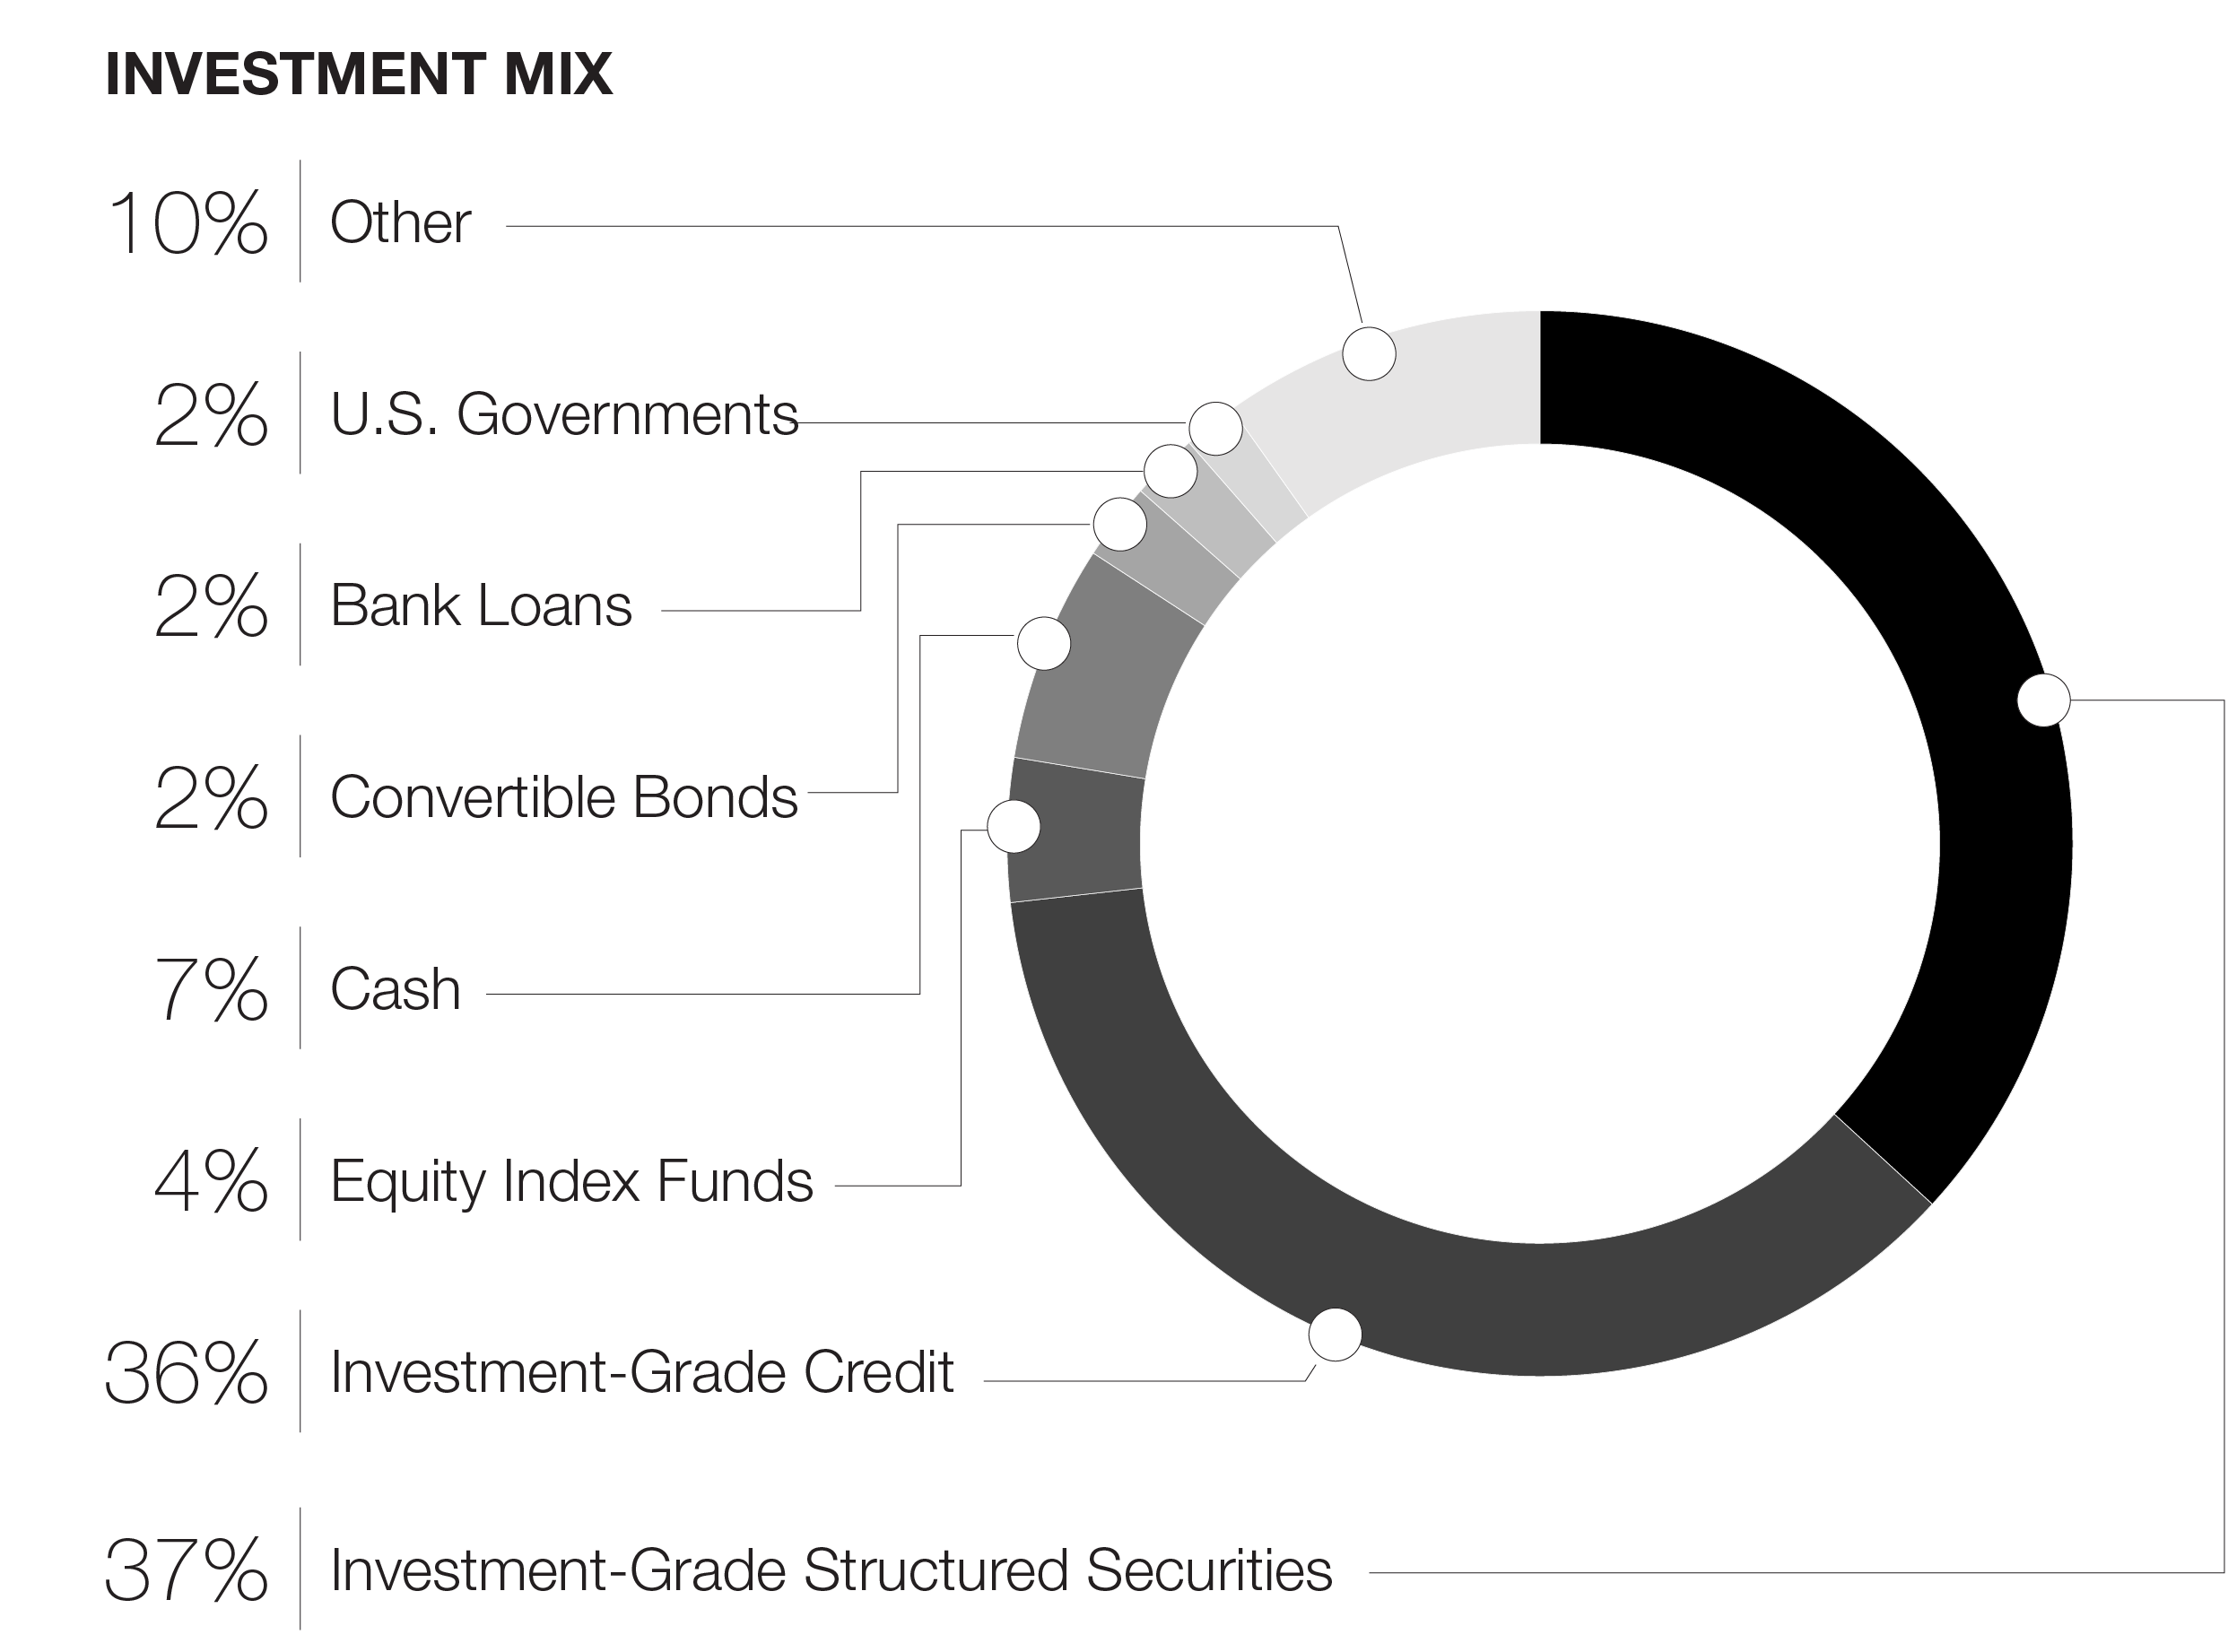 Capital Management - Investment Mix.png